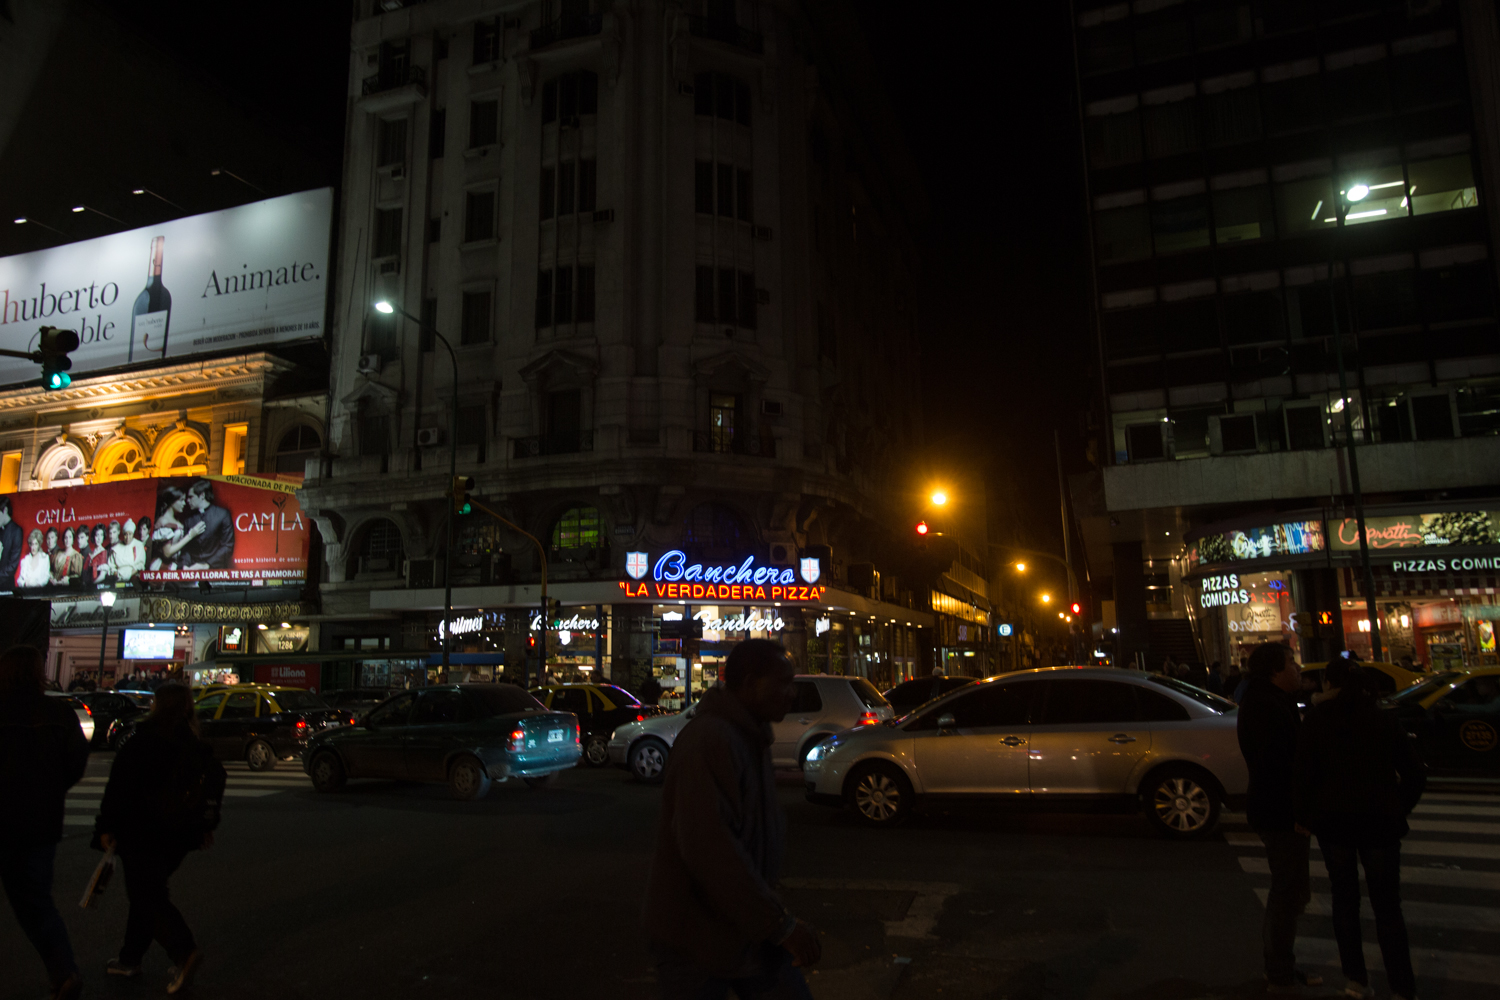 I'm a sucker for neon signs and Buenos Aires has plenty of them.